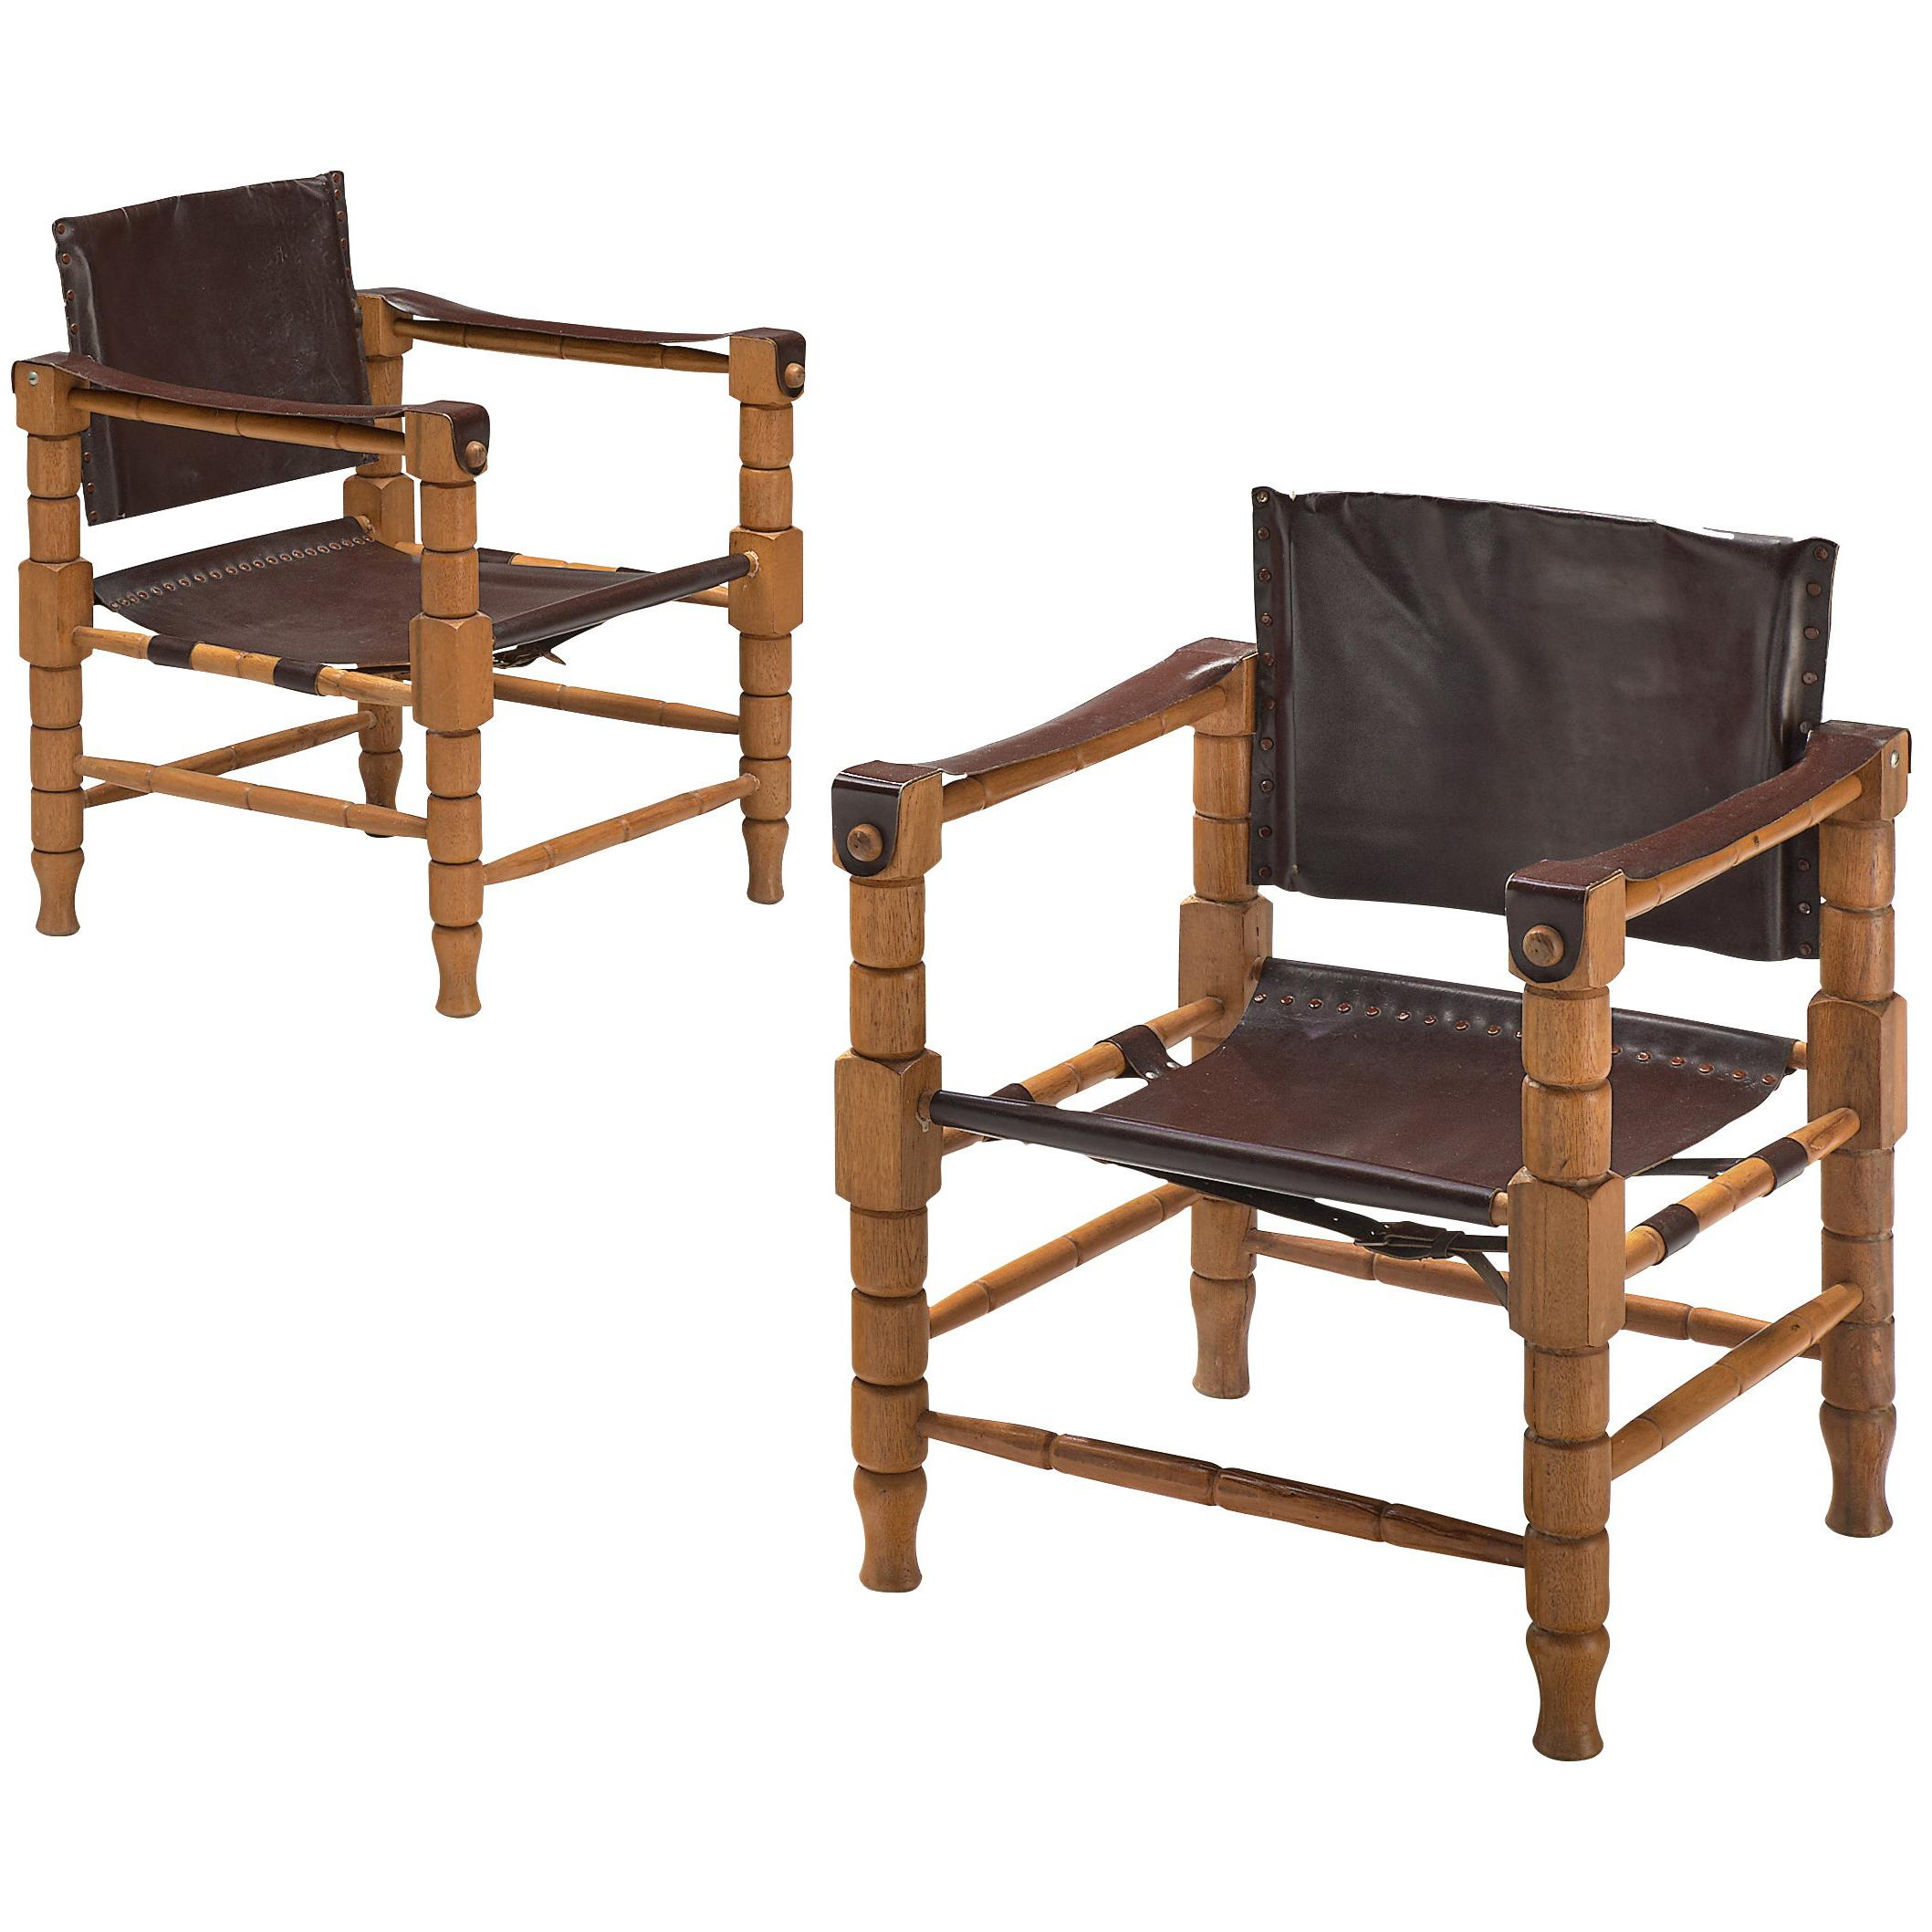 Safari Chairs with Sculptural Wooden Frames